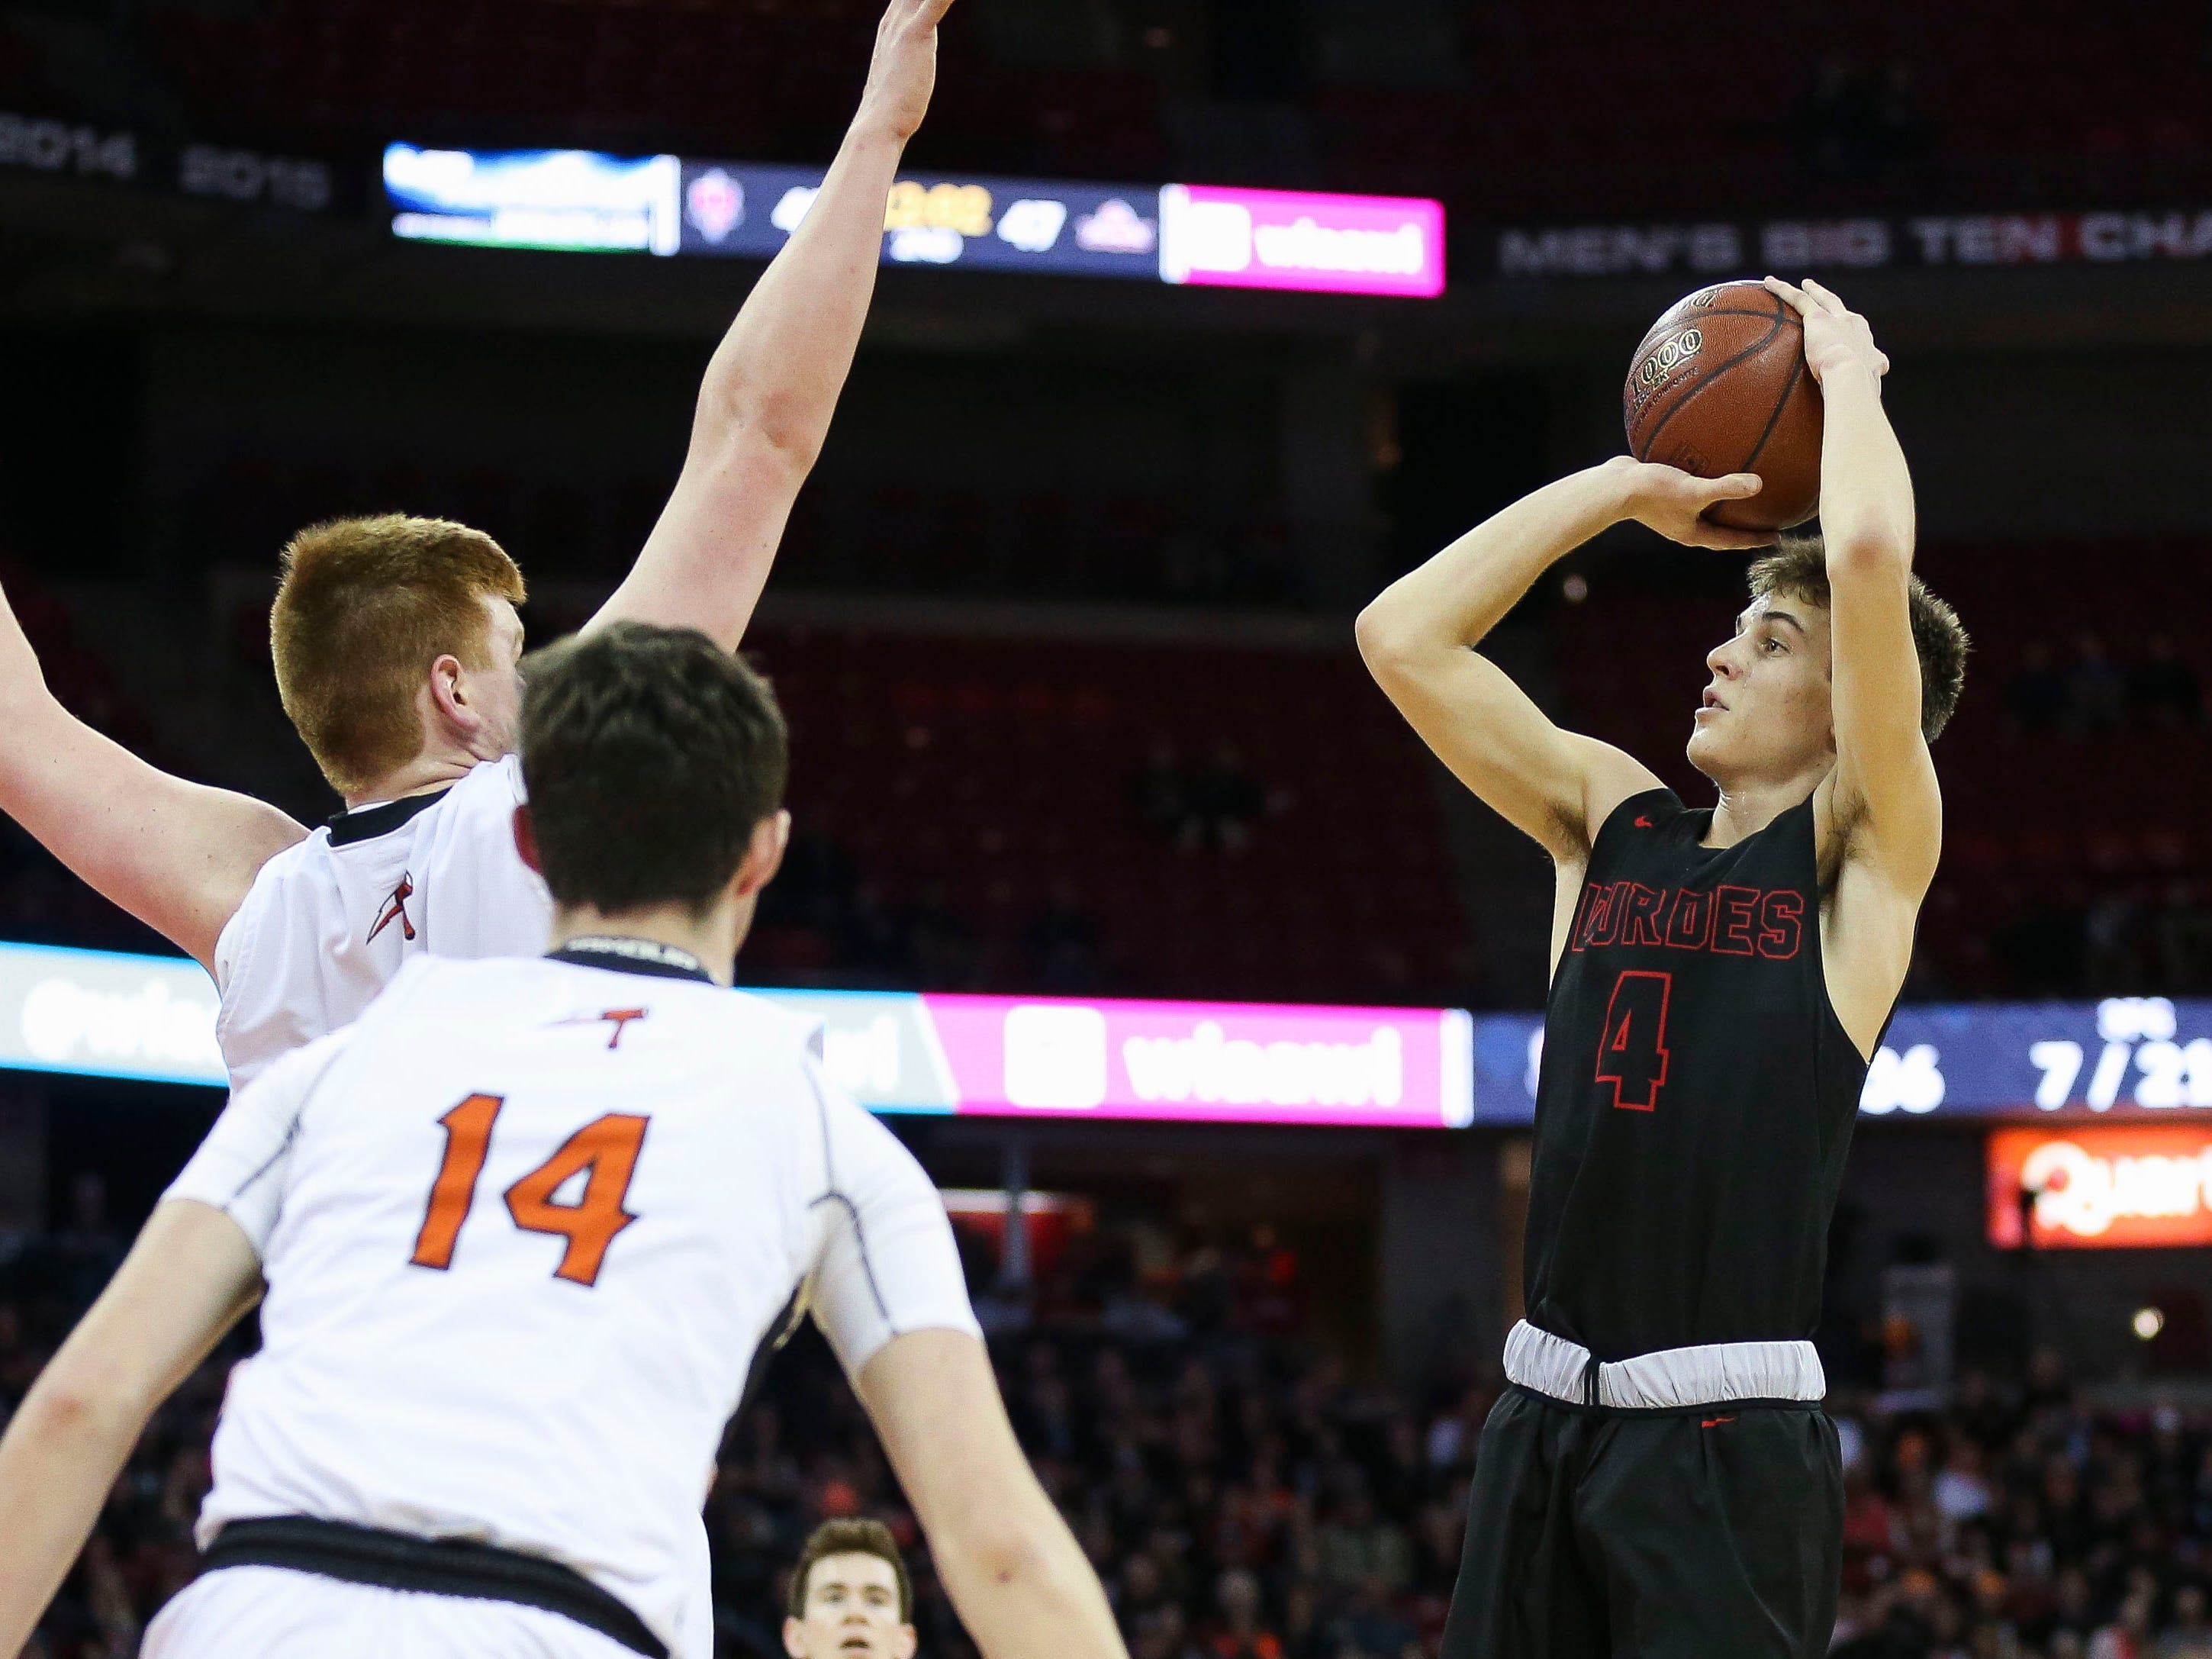 Lourdes Academy's Preston Ruedinger (4) puts up a shot against Osseo-Fairchild High School in a Division 4 boys basketball state semifinal on Thursday, March 14, 2019, at the Kohl Center in Madison, Wis. Lourdes Academy won the game, 70-68, on a go-ahead basket with 1.5 seconds remaining.